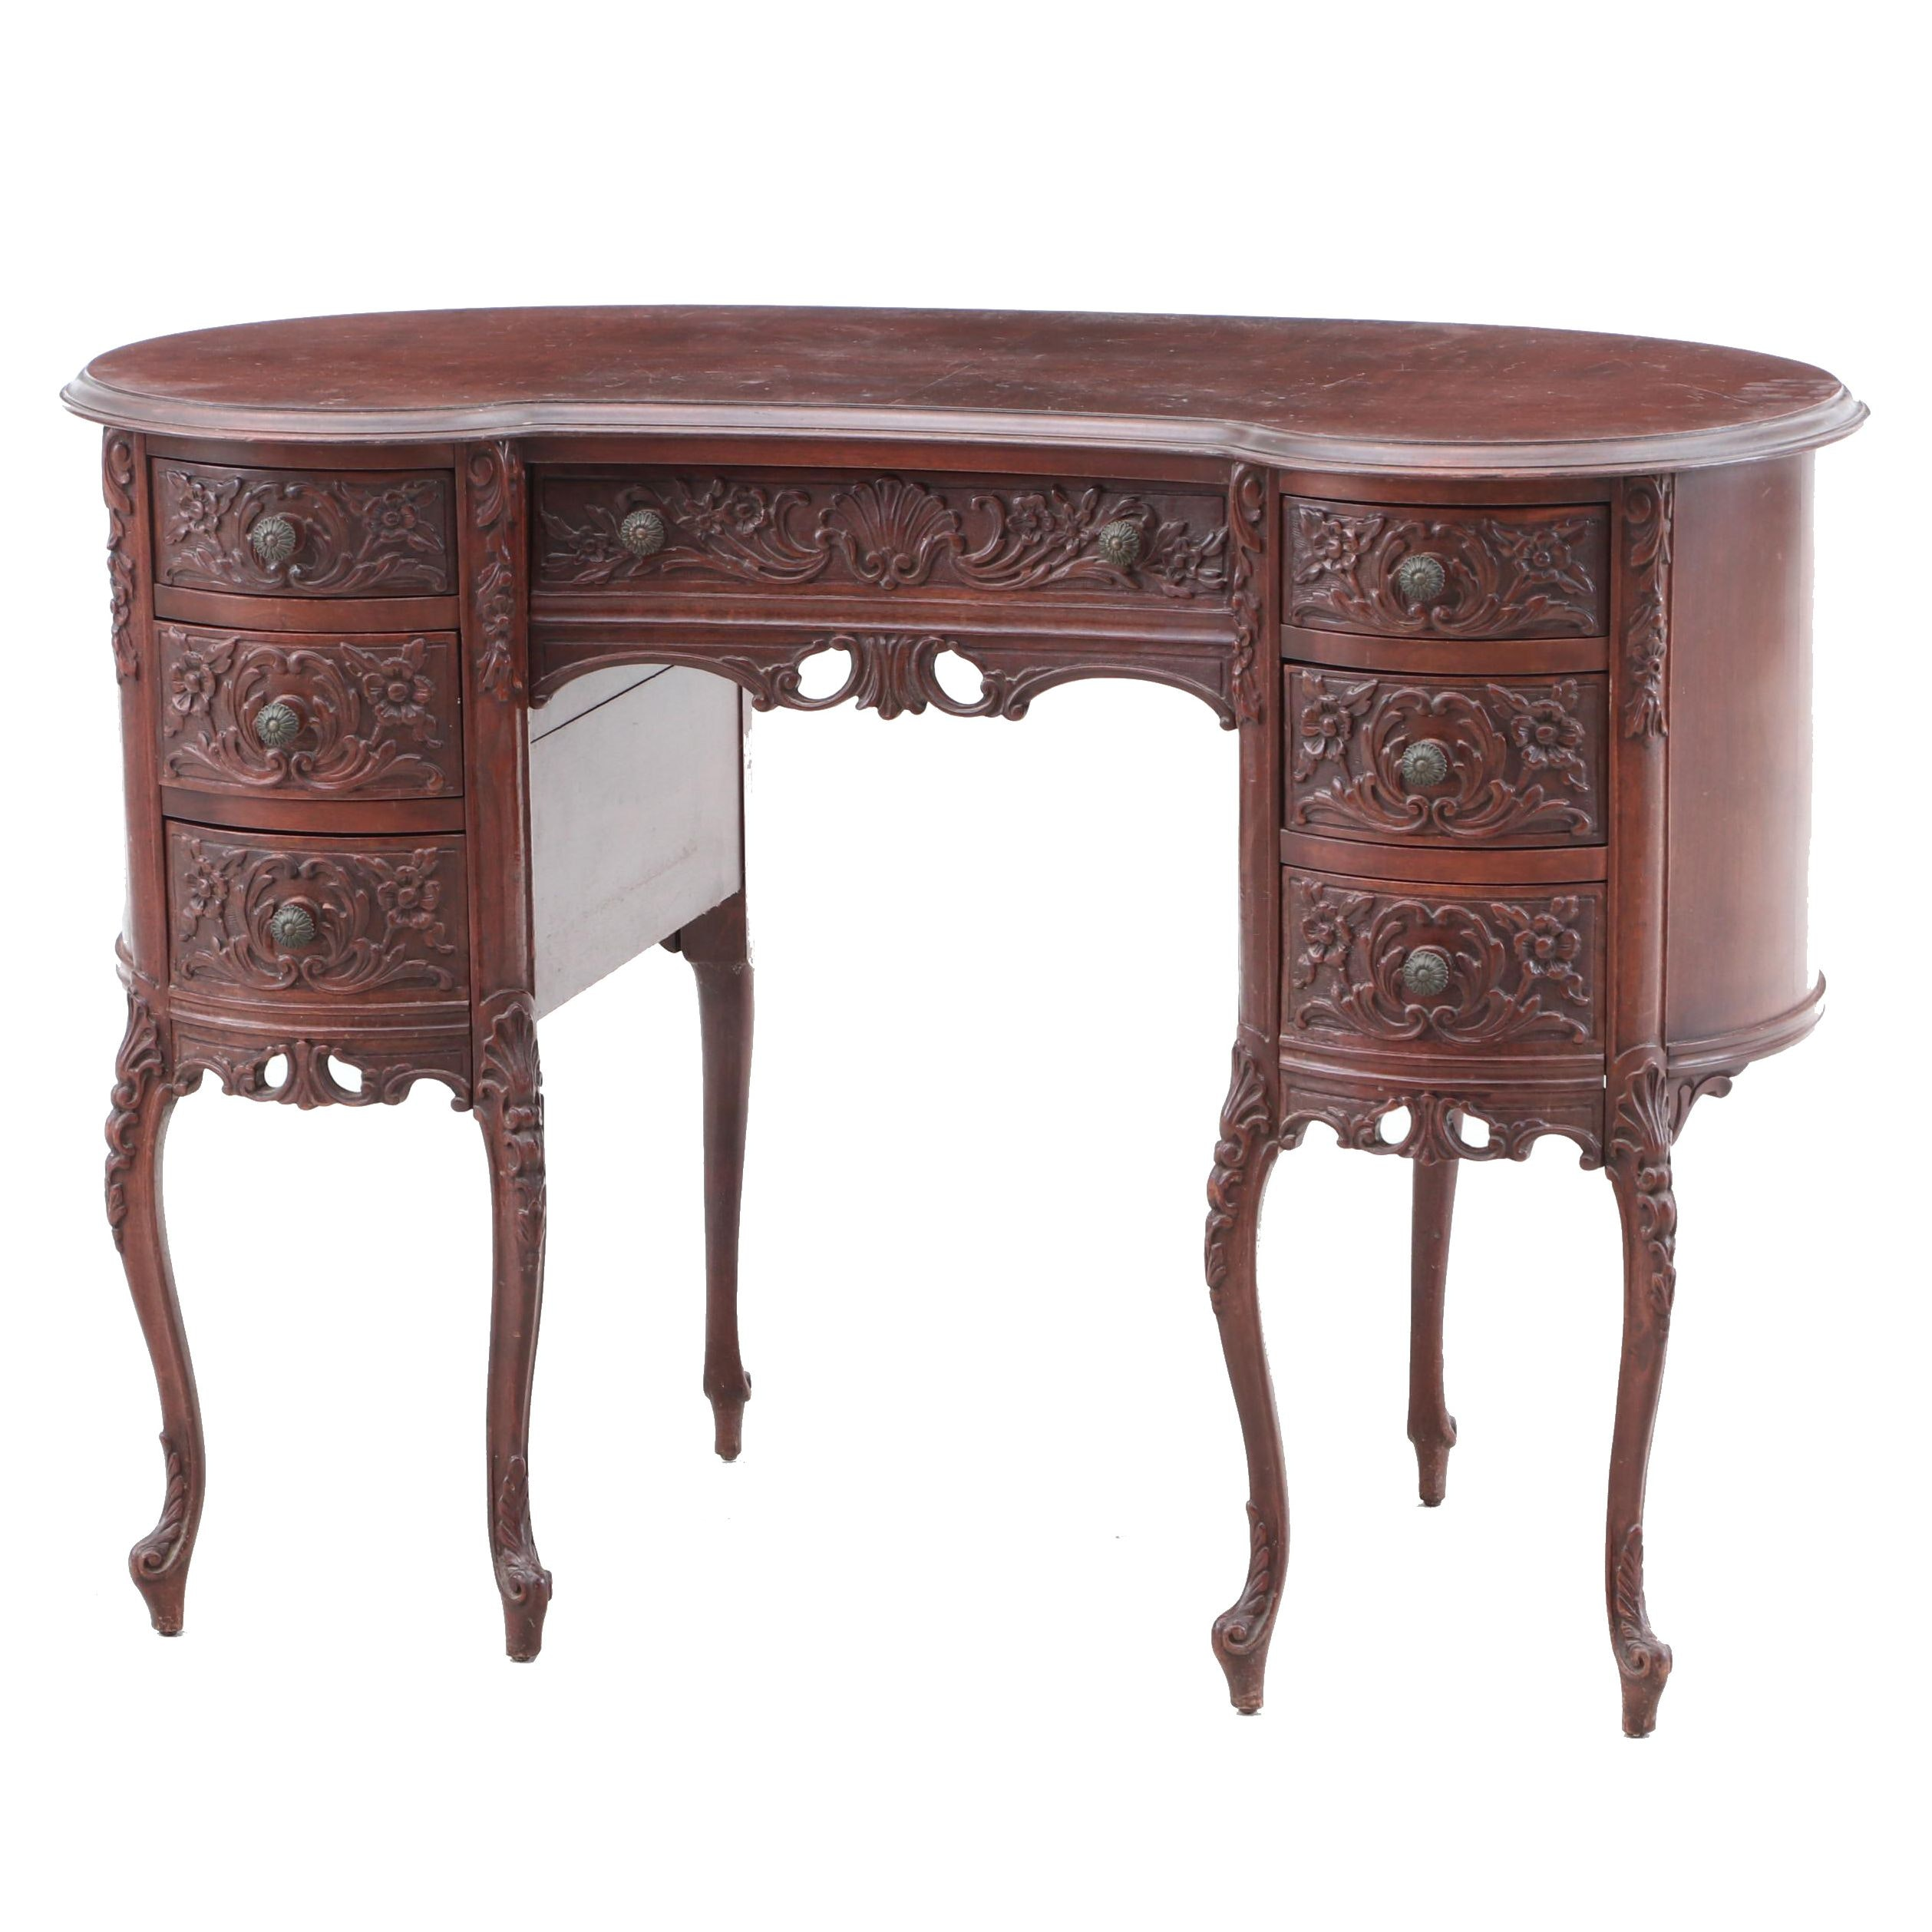 1930s Carved Walnut Desk